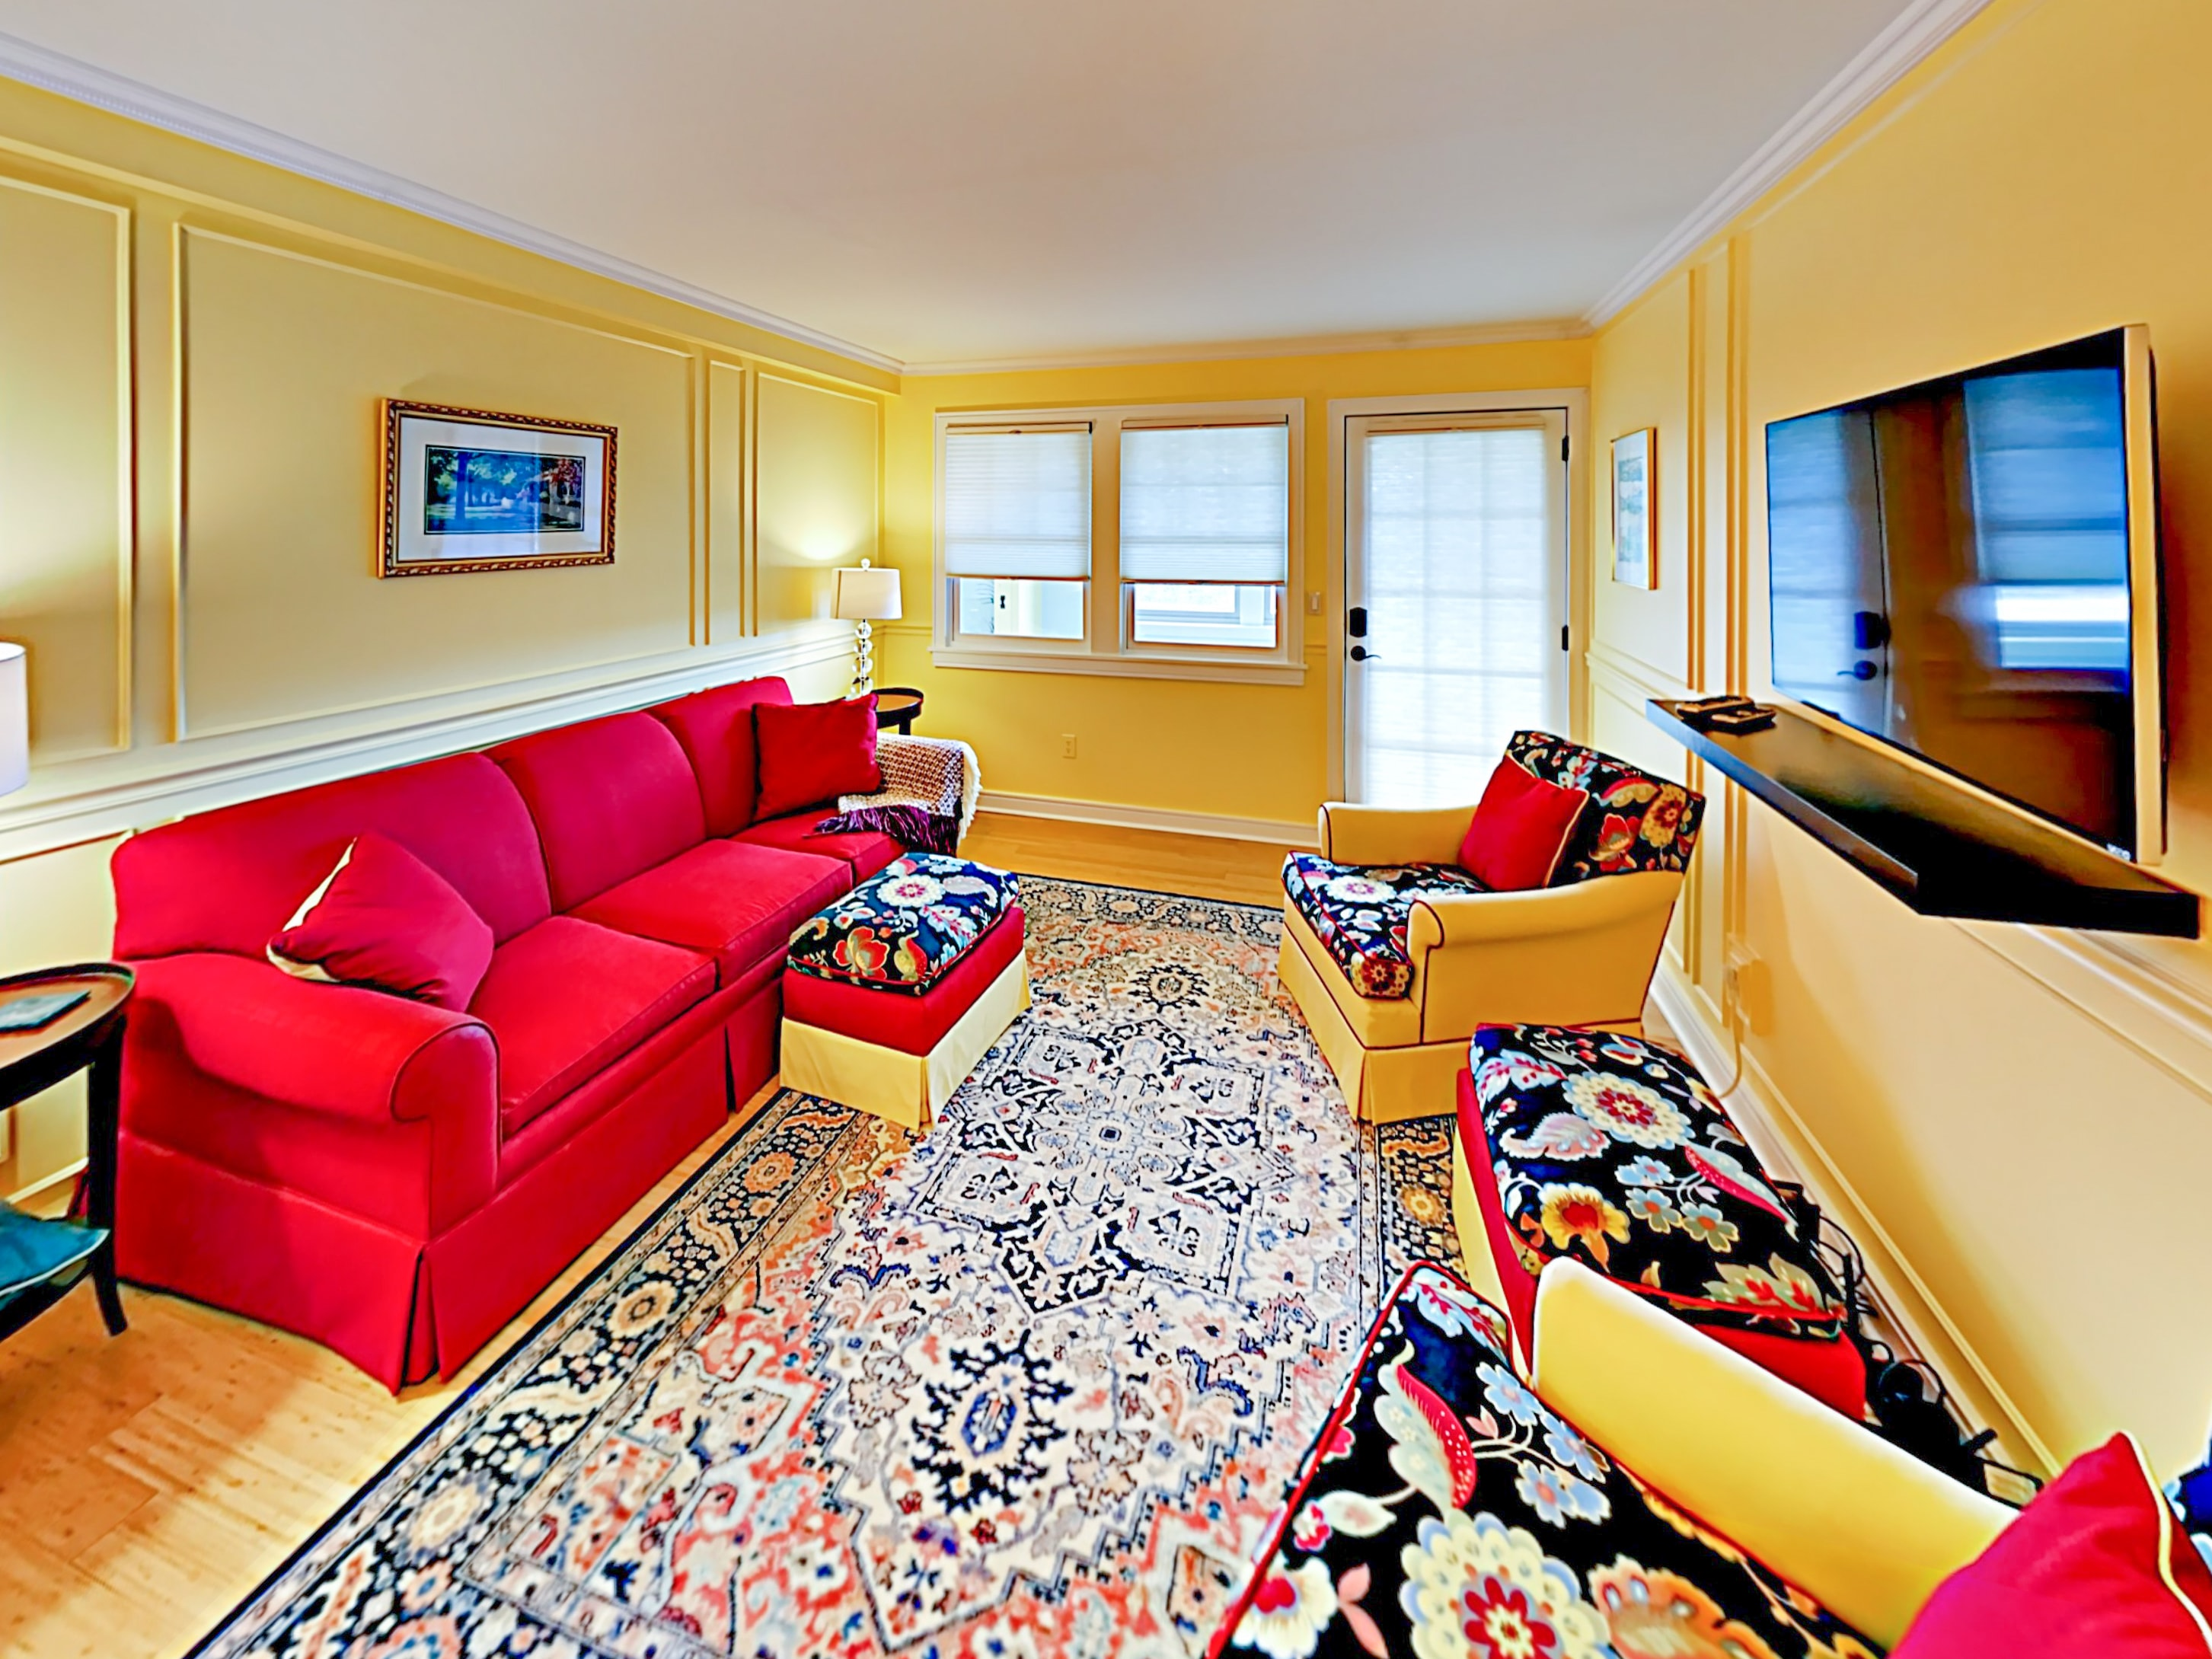 Welcome to Asheville! This condo is professionally managed by TurnKey Vacation Rentals.